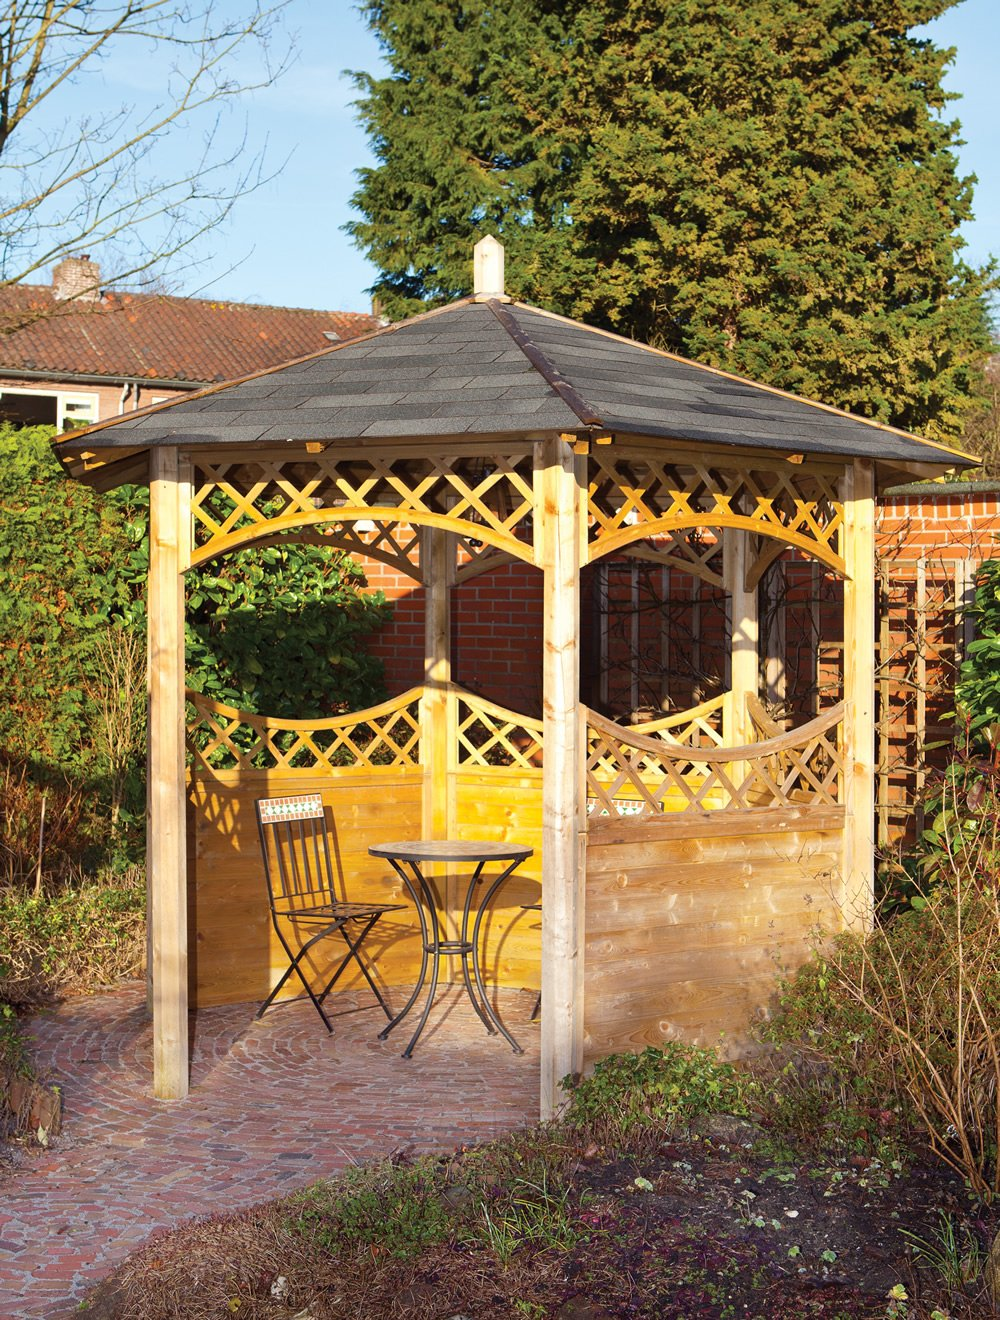 Curved lattice gazebo